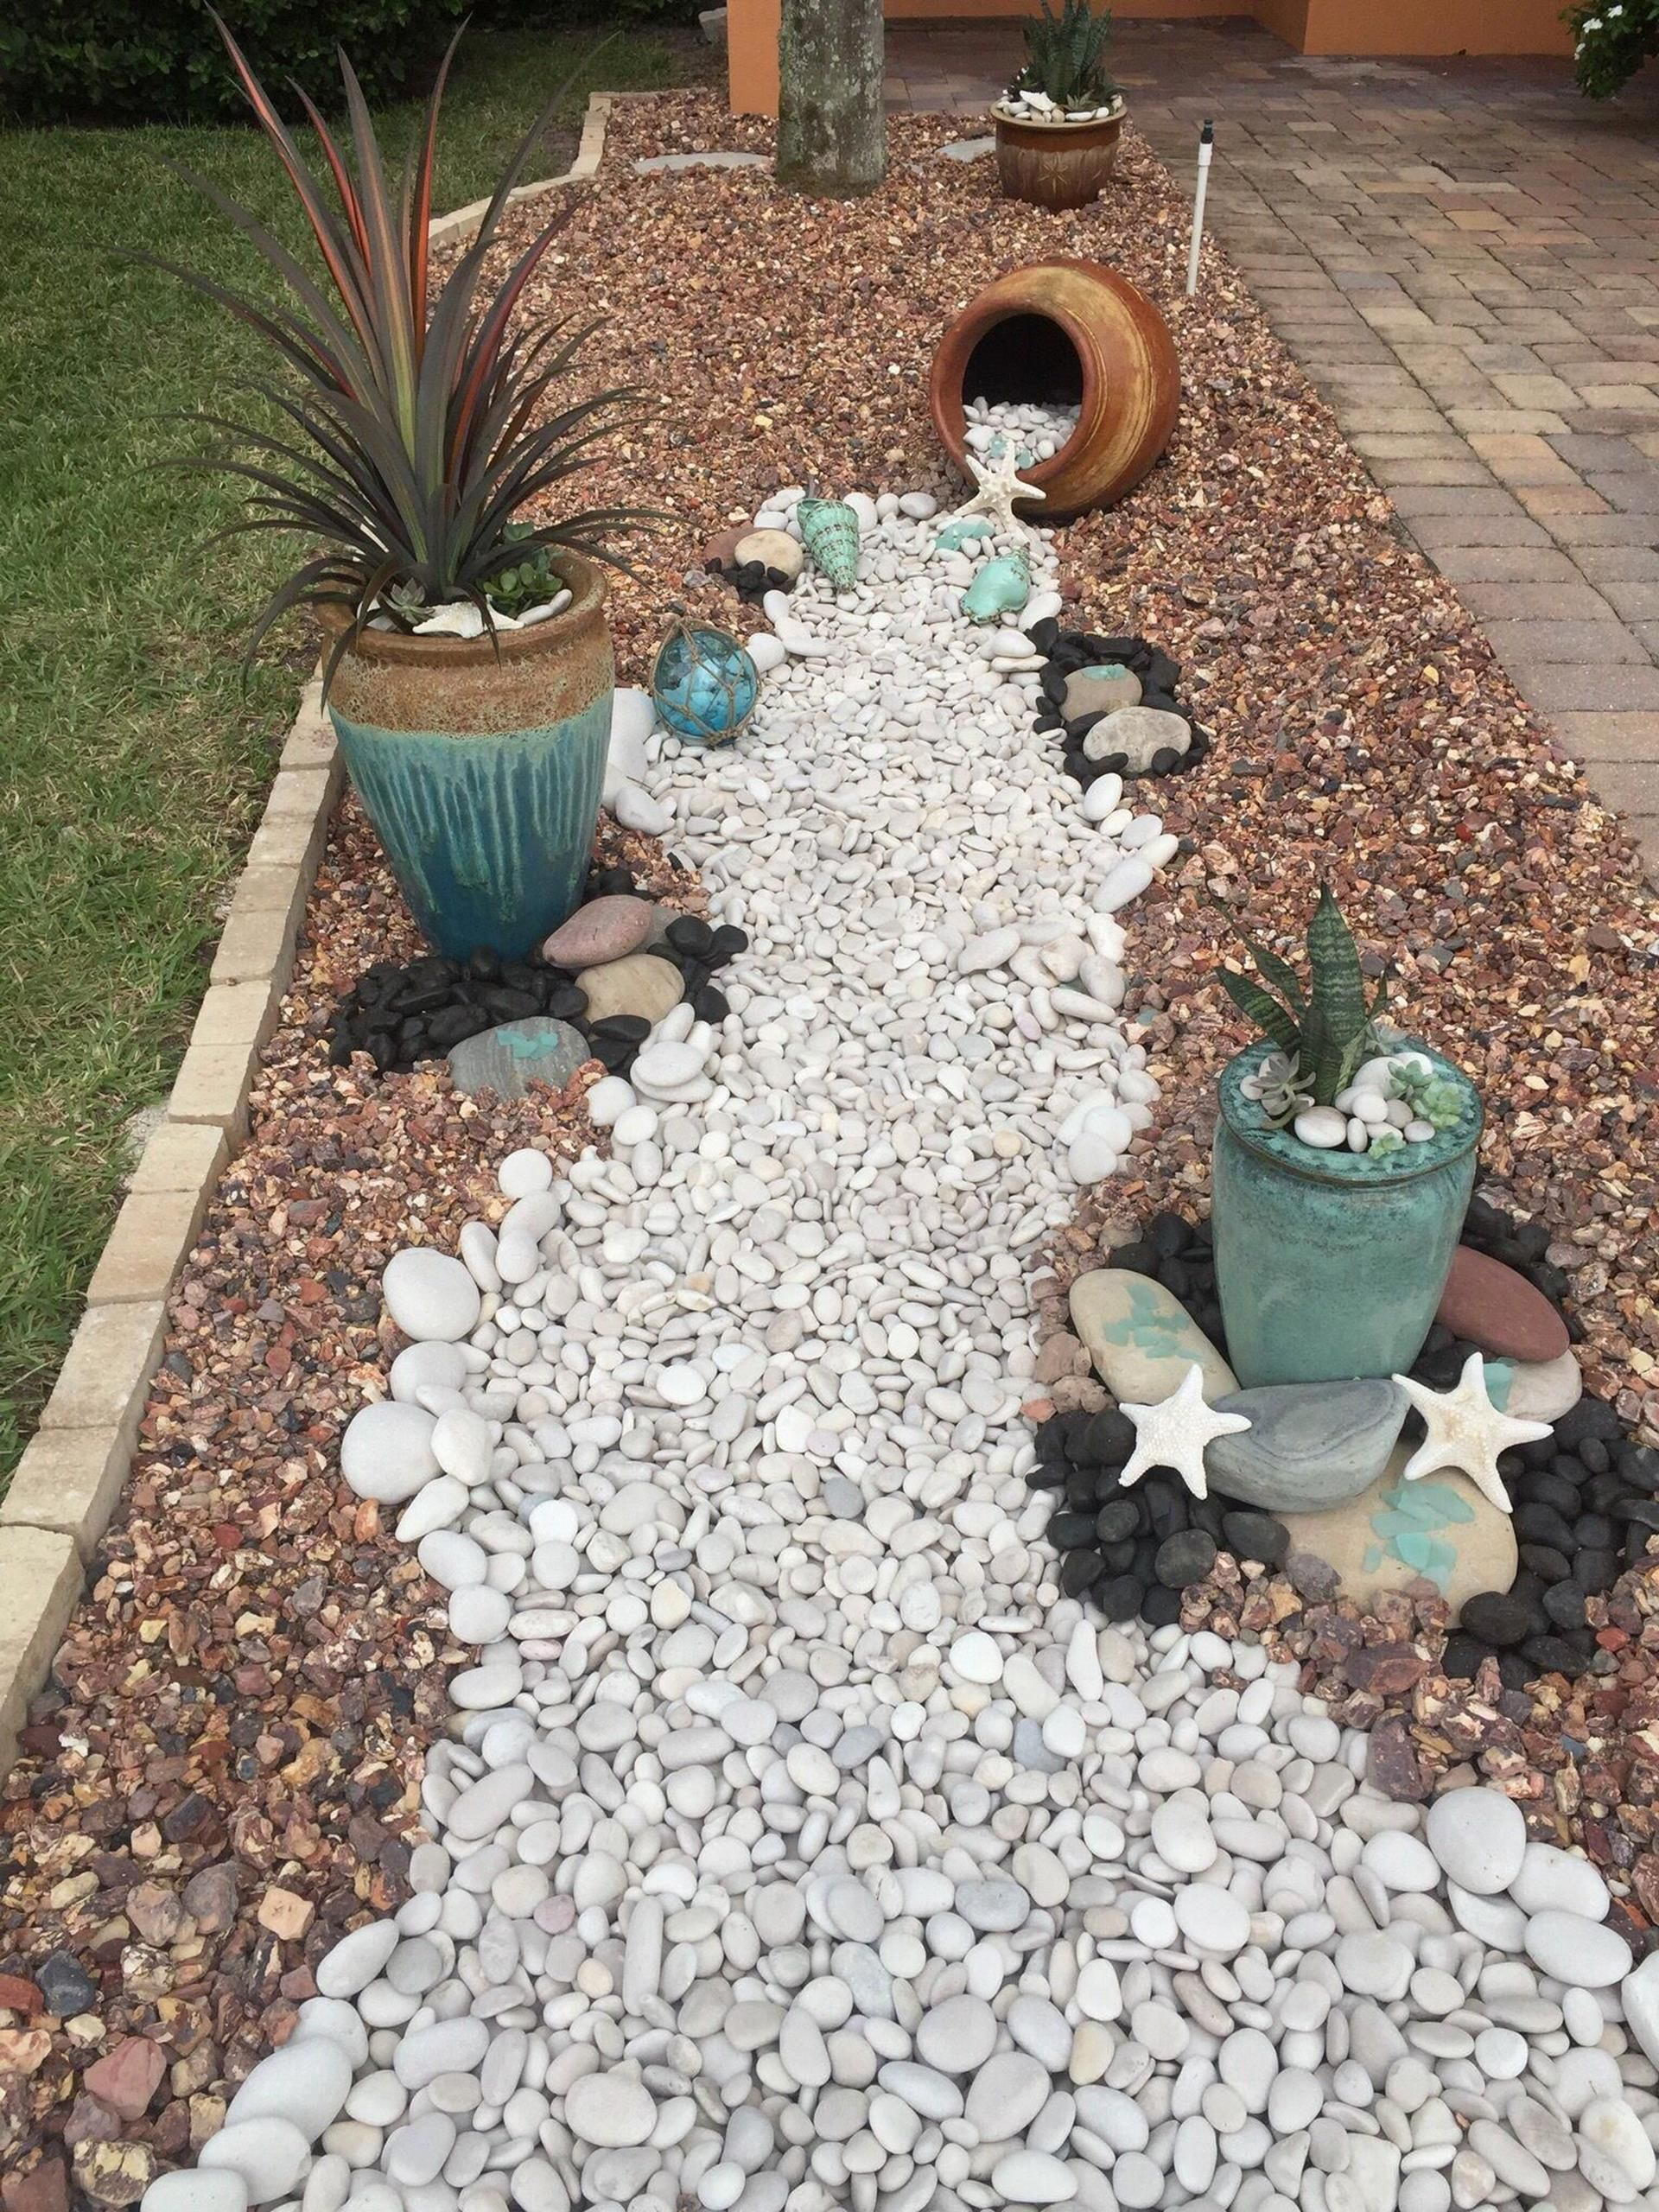 Excited Front Yard Landscaping Ideas with White Rocks - Decor